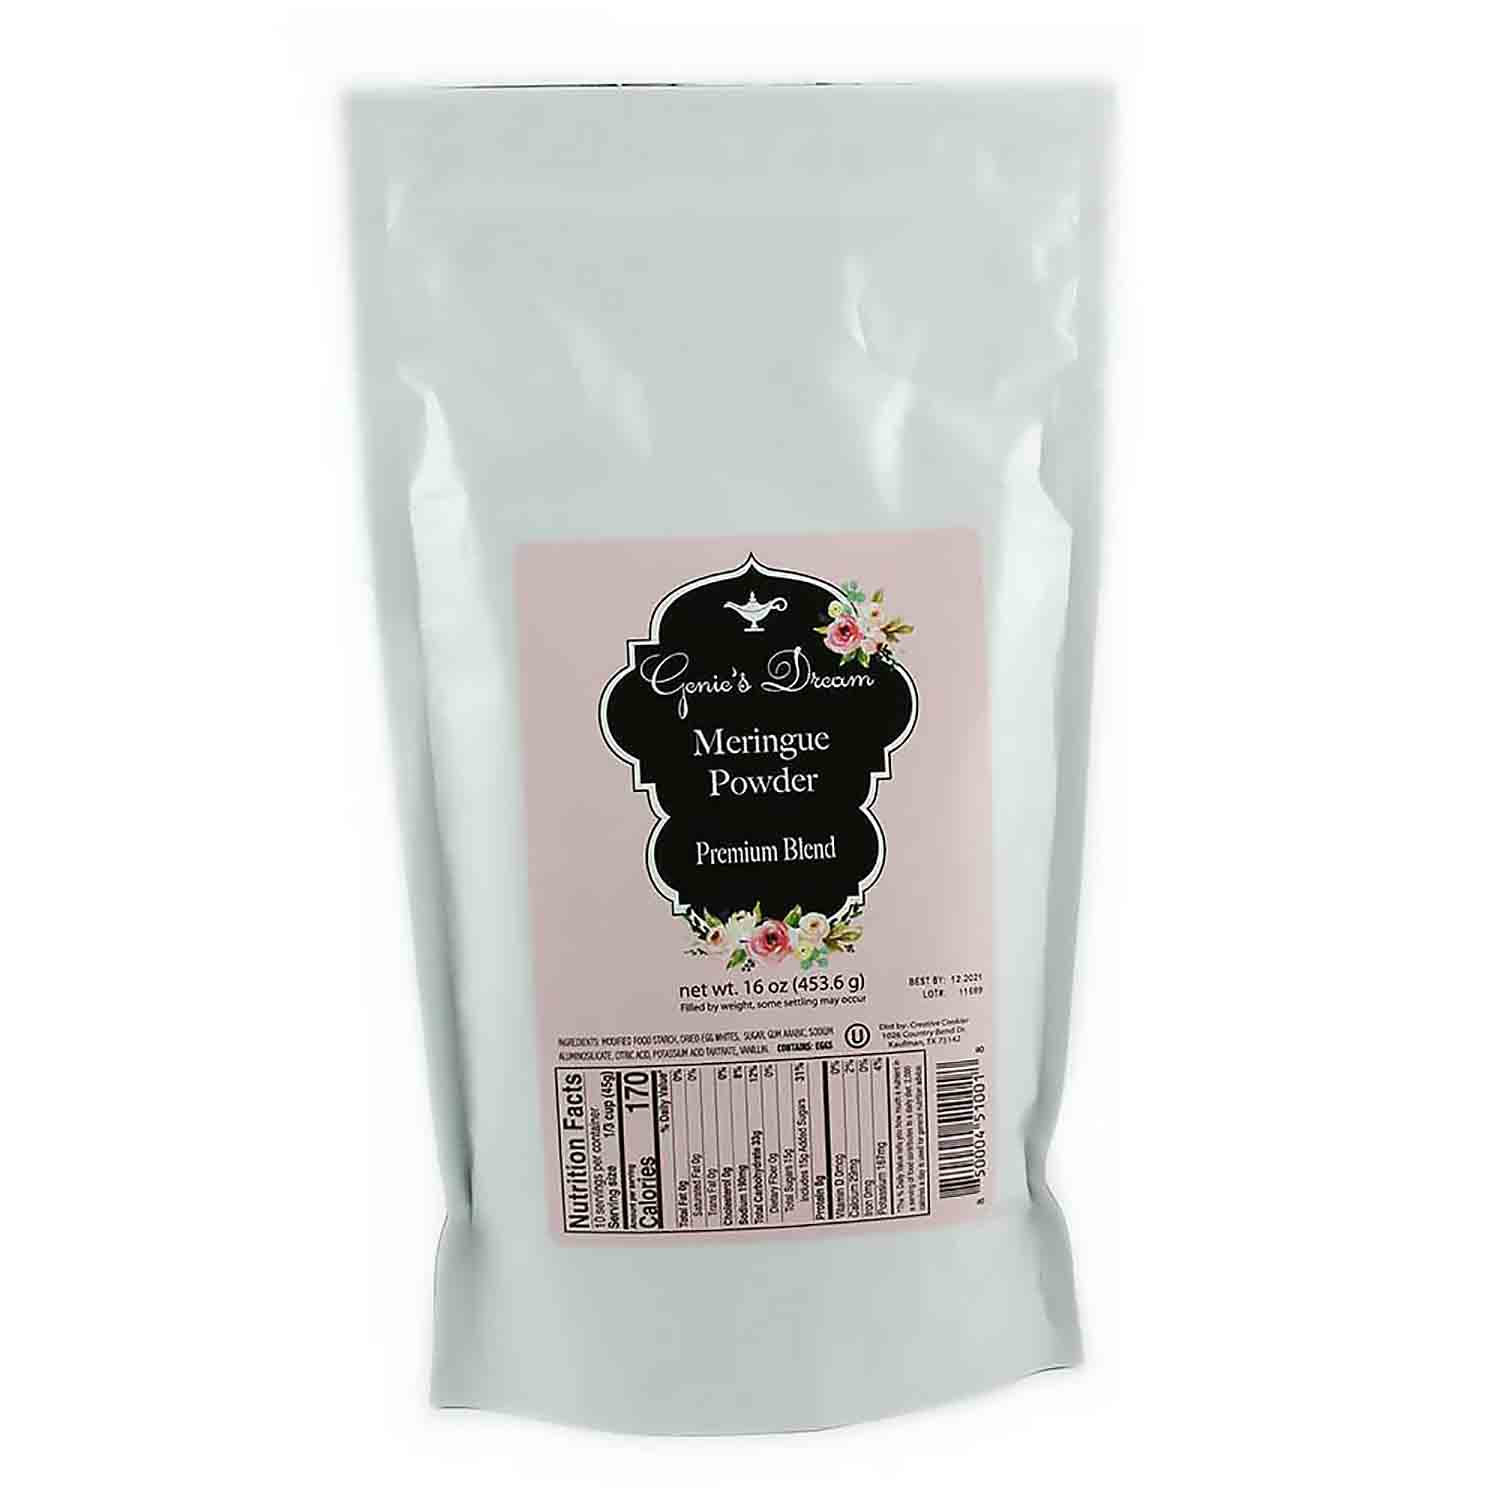 Genie's Dream Premium Blend Meringue Powder